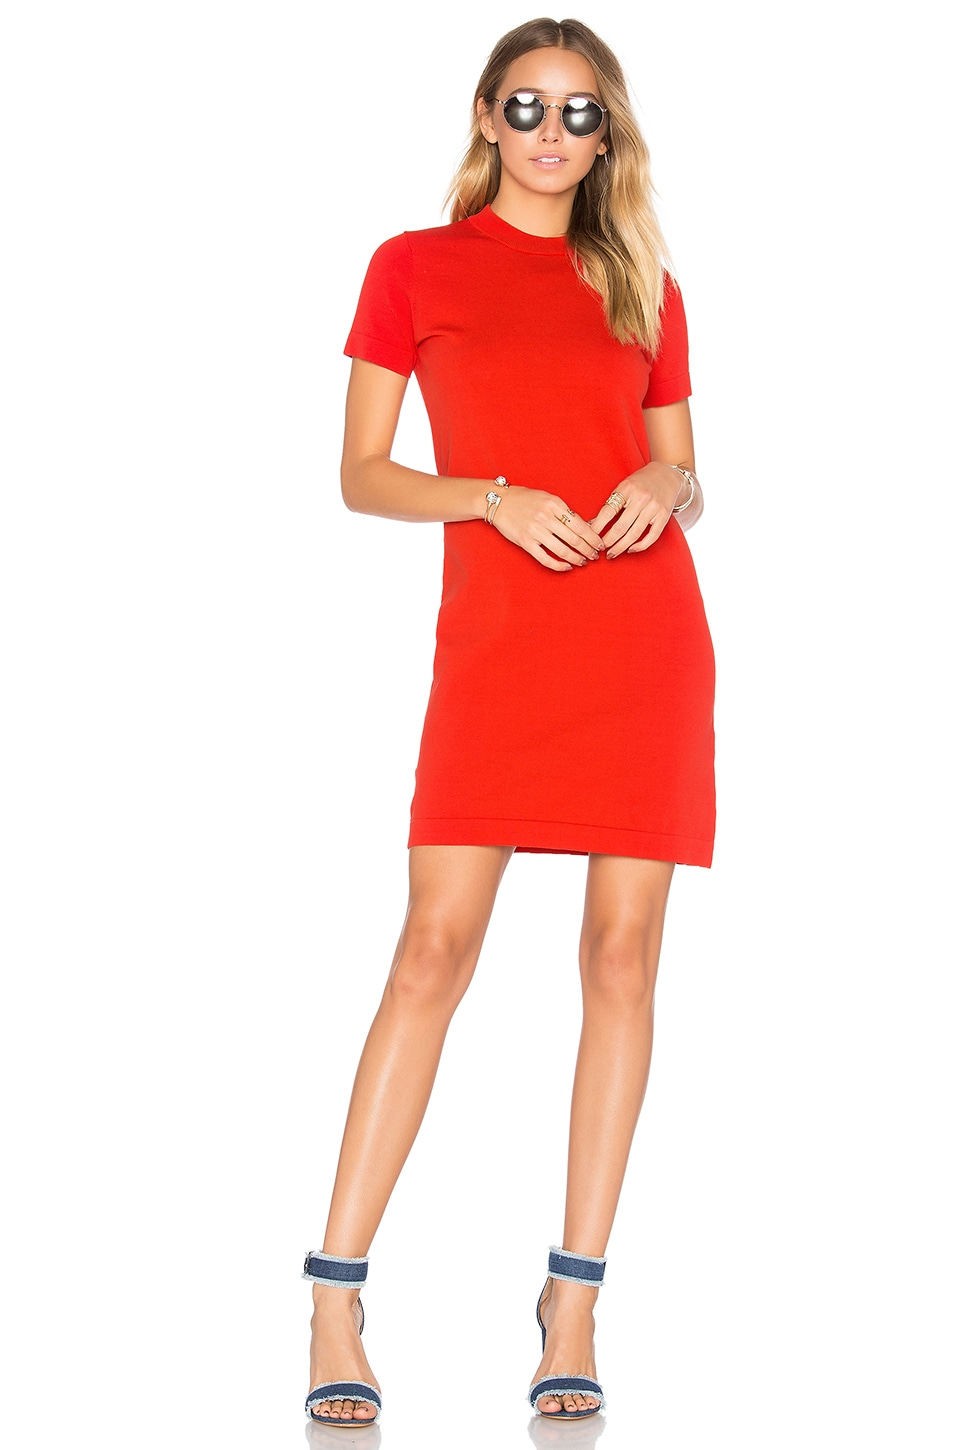 DemyLee Maxton Sweater Dress in Poppy Red